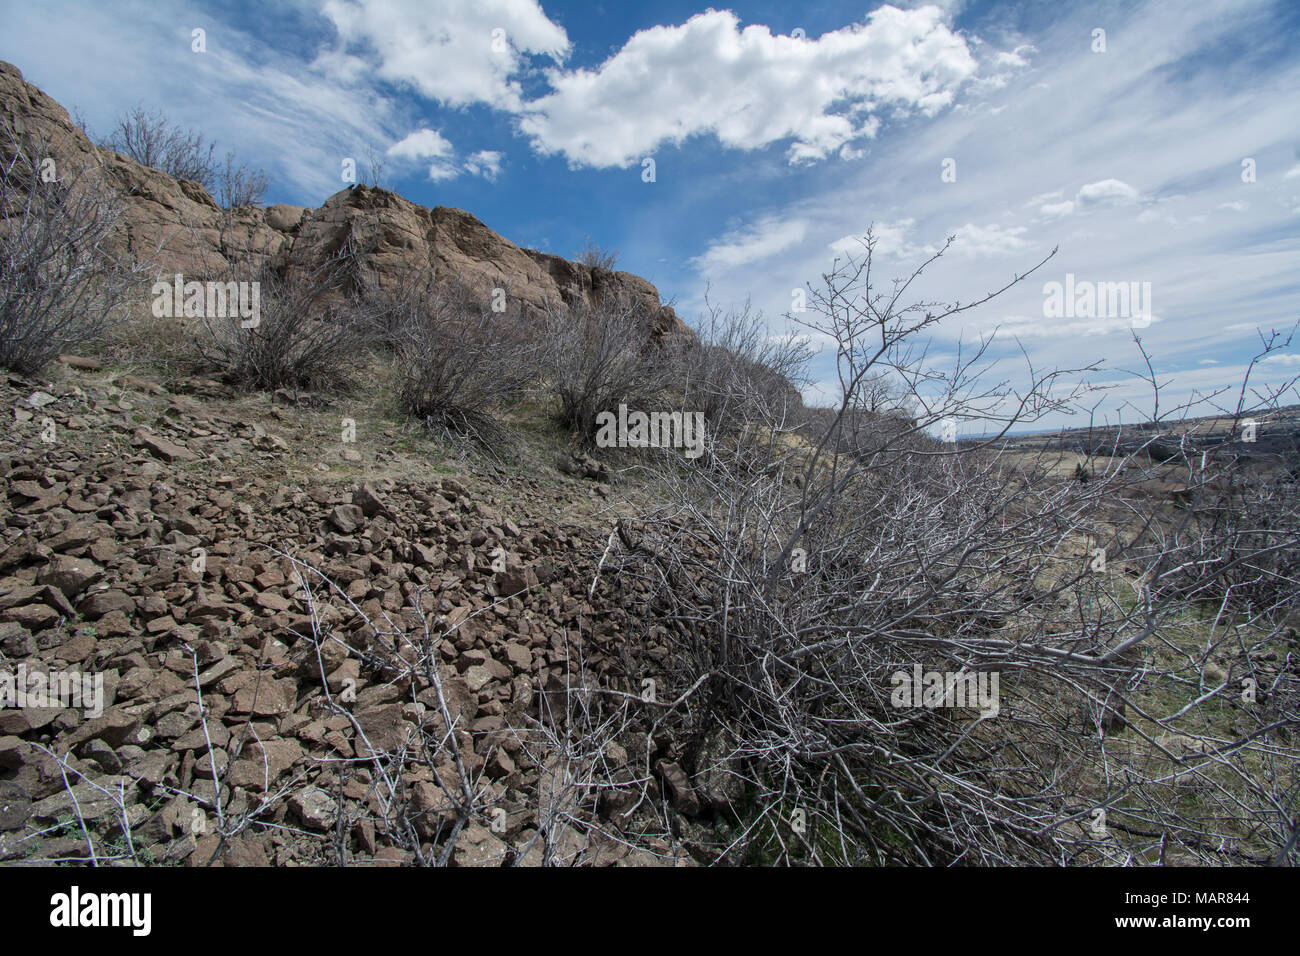 Rocky Mountain Lower Montane-Foothill Shrubland habitat on South Table Mountain Park in Jefferson County, Colorado, USA. - Stock Image